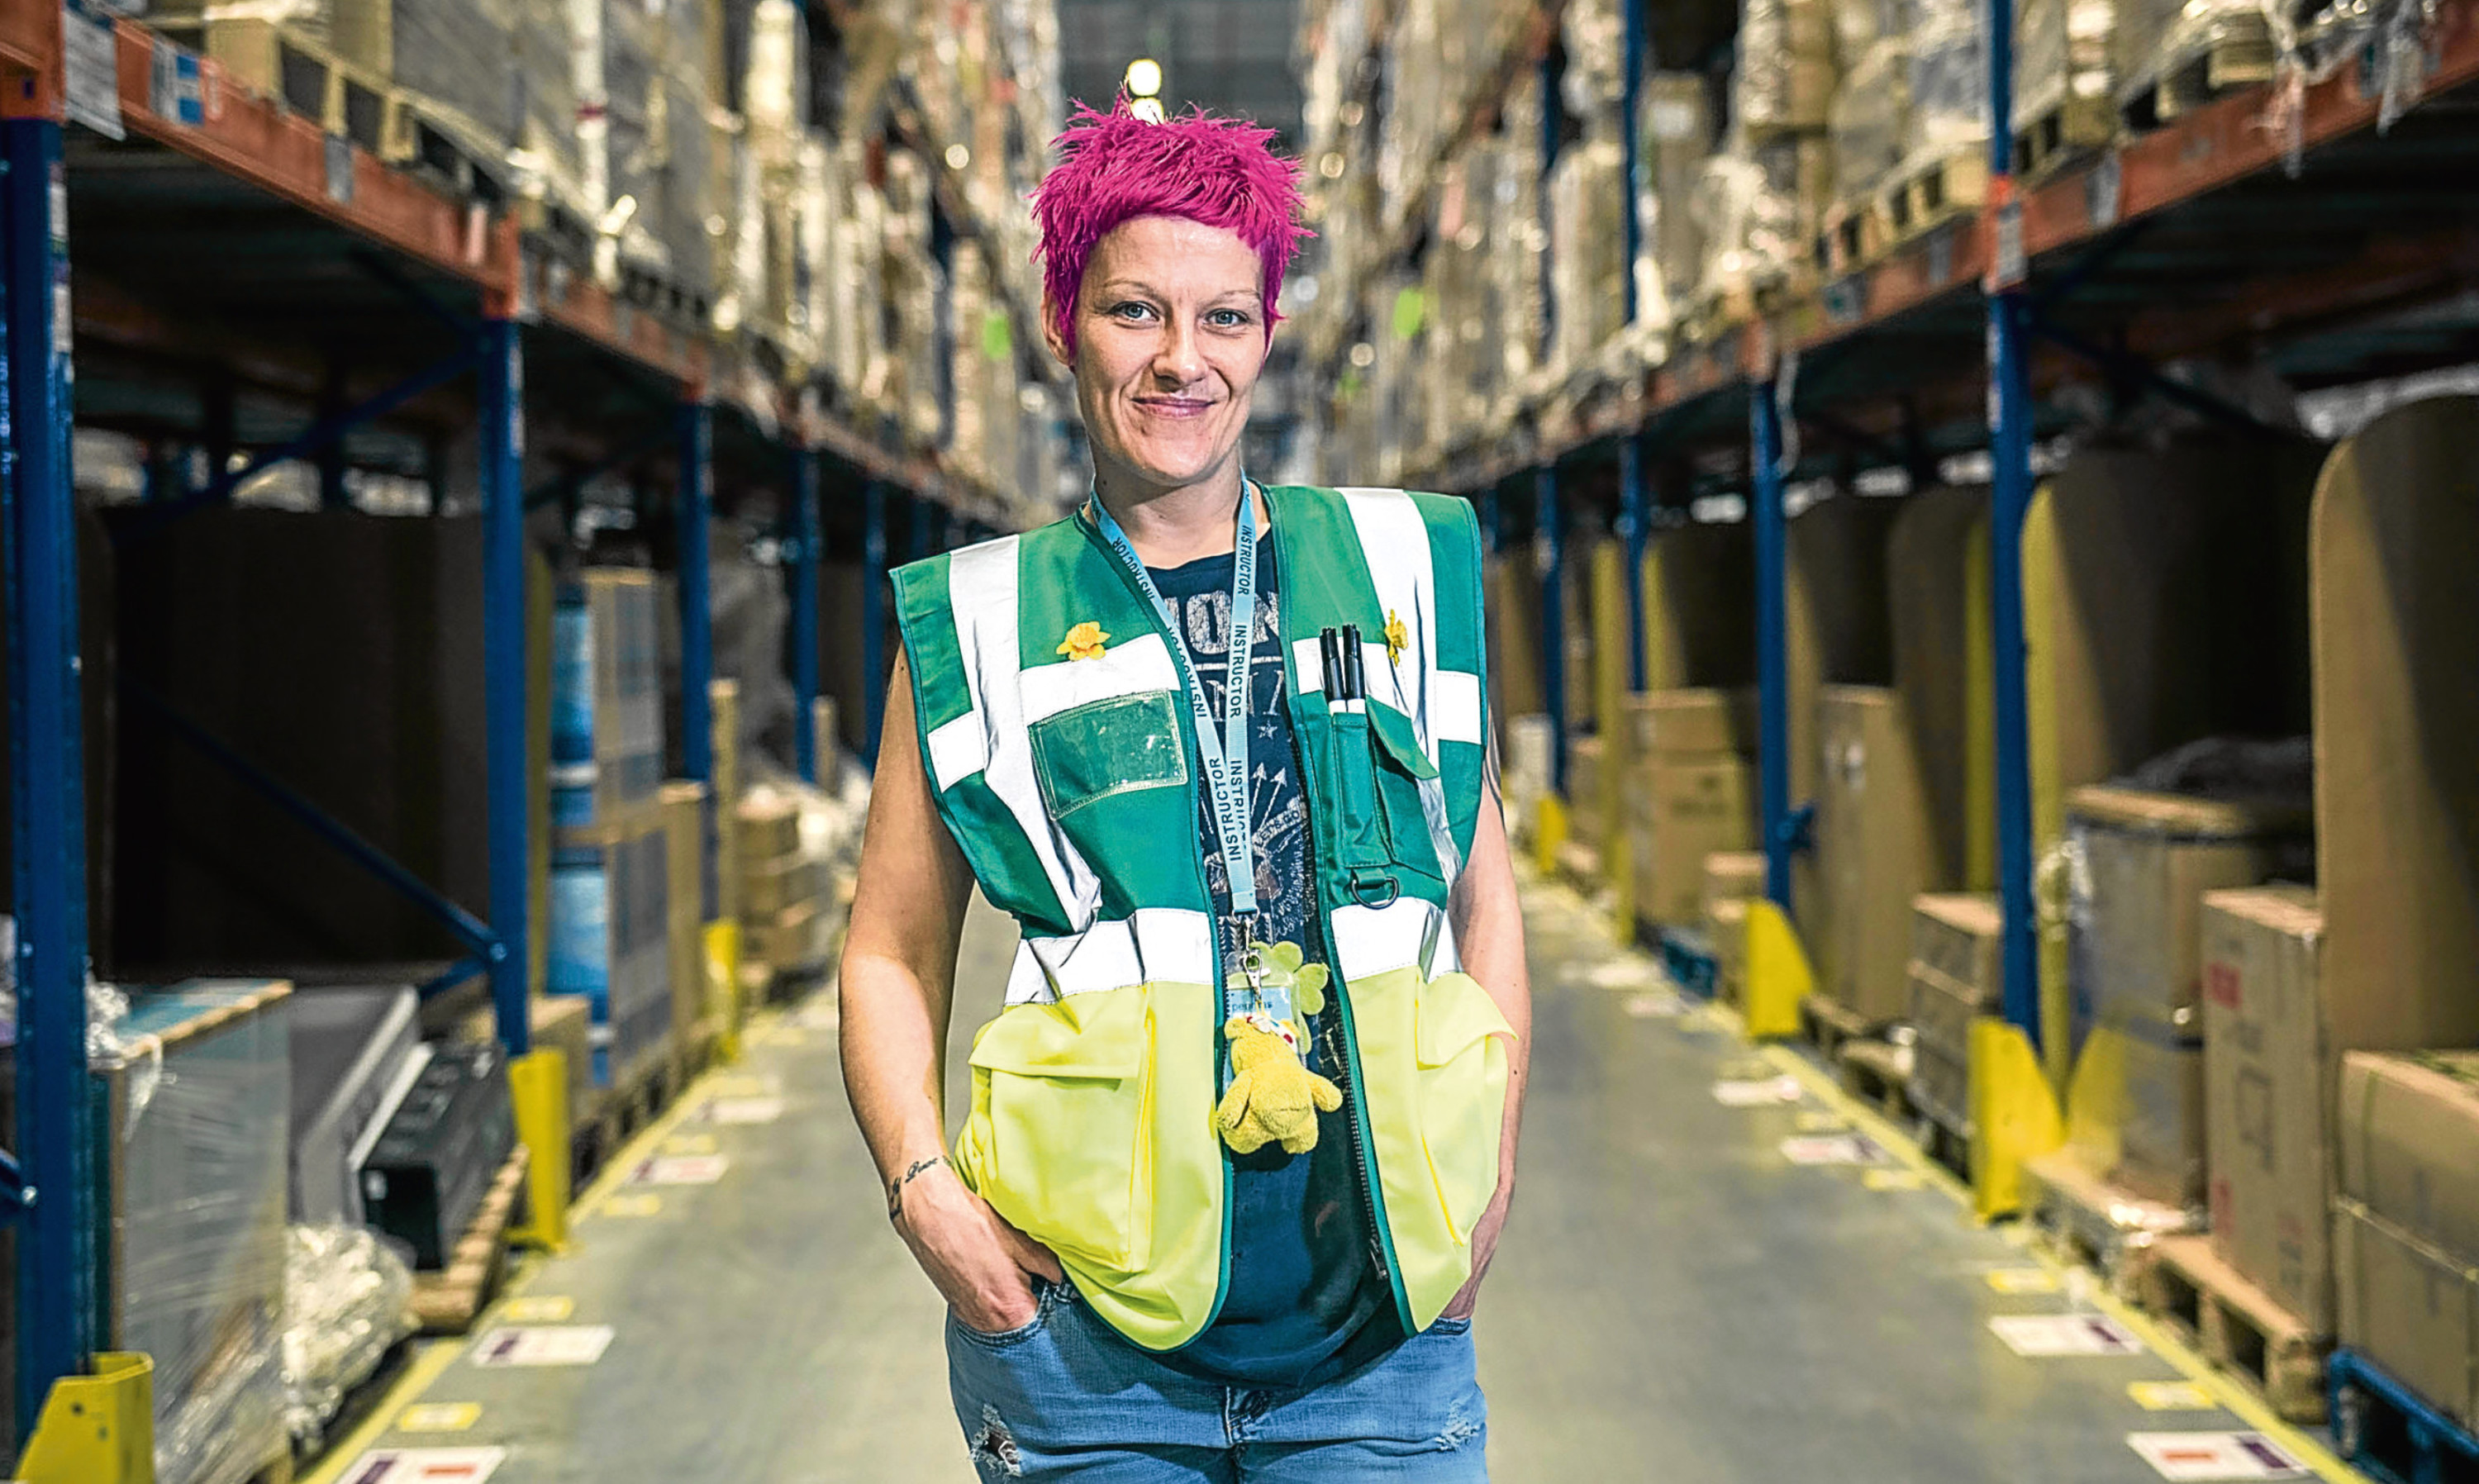 Shirley Penman  joined Amazon as a seasonal worker and has made a successful career  for herself.